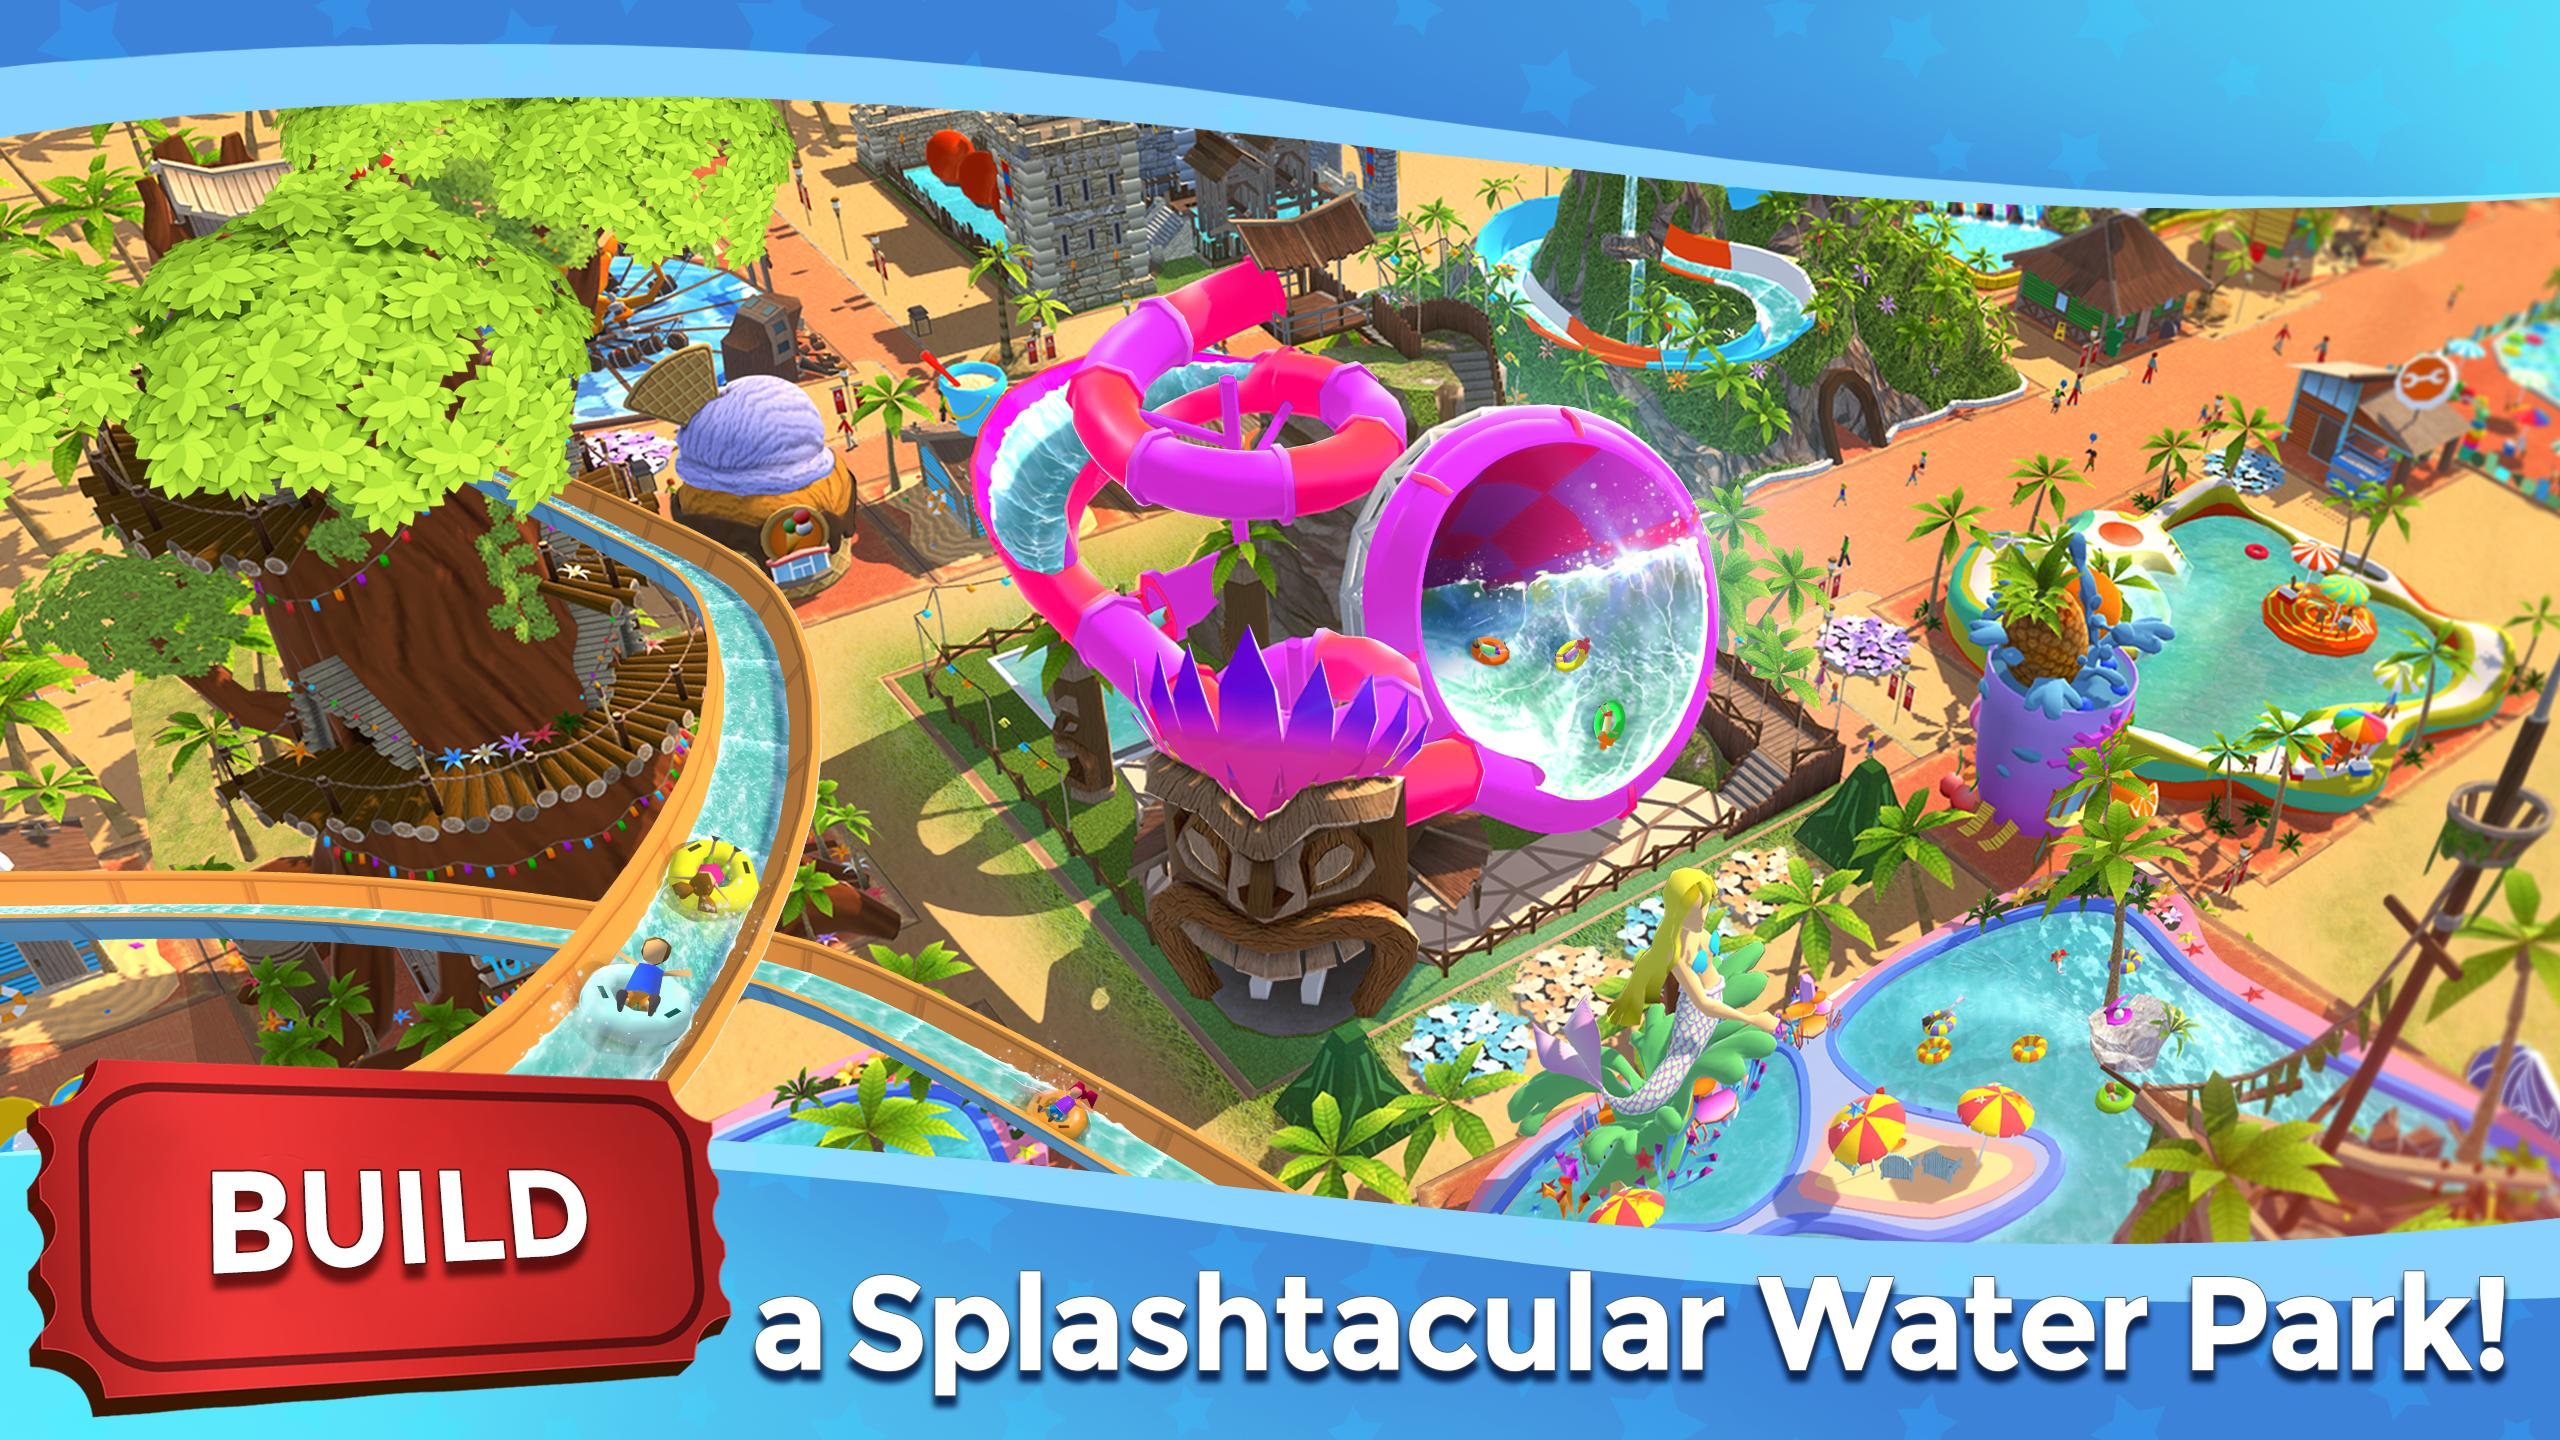 RollerCoaster Tycoon Touch - Build your Theme Park 3.5.0 Screenshot 20